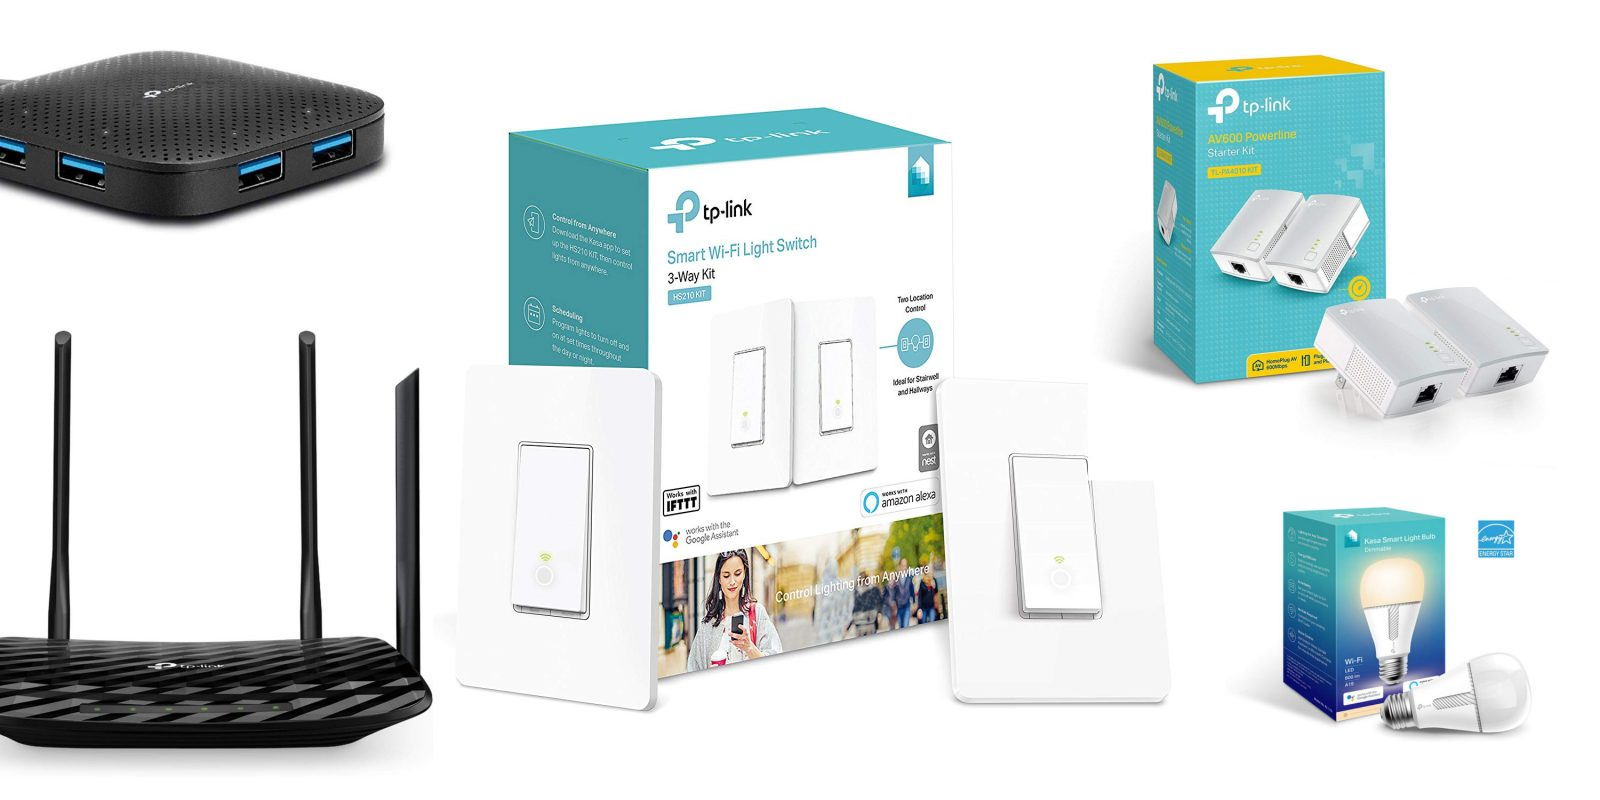 Amazon 1-day TP-Link network sale from $8: smart plugs/light